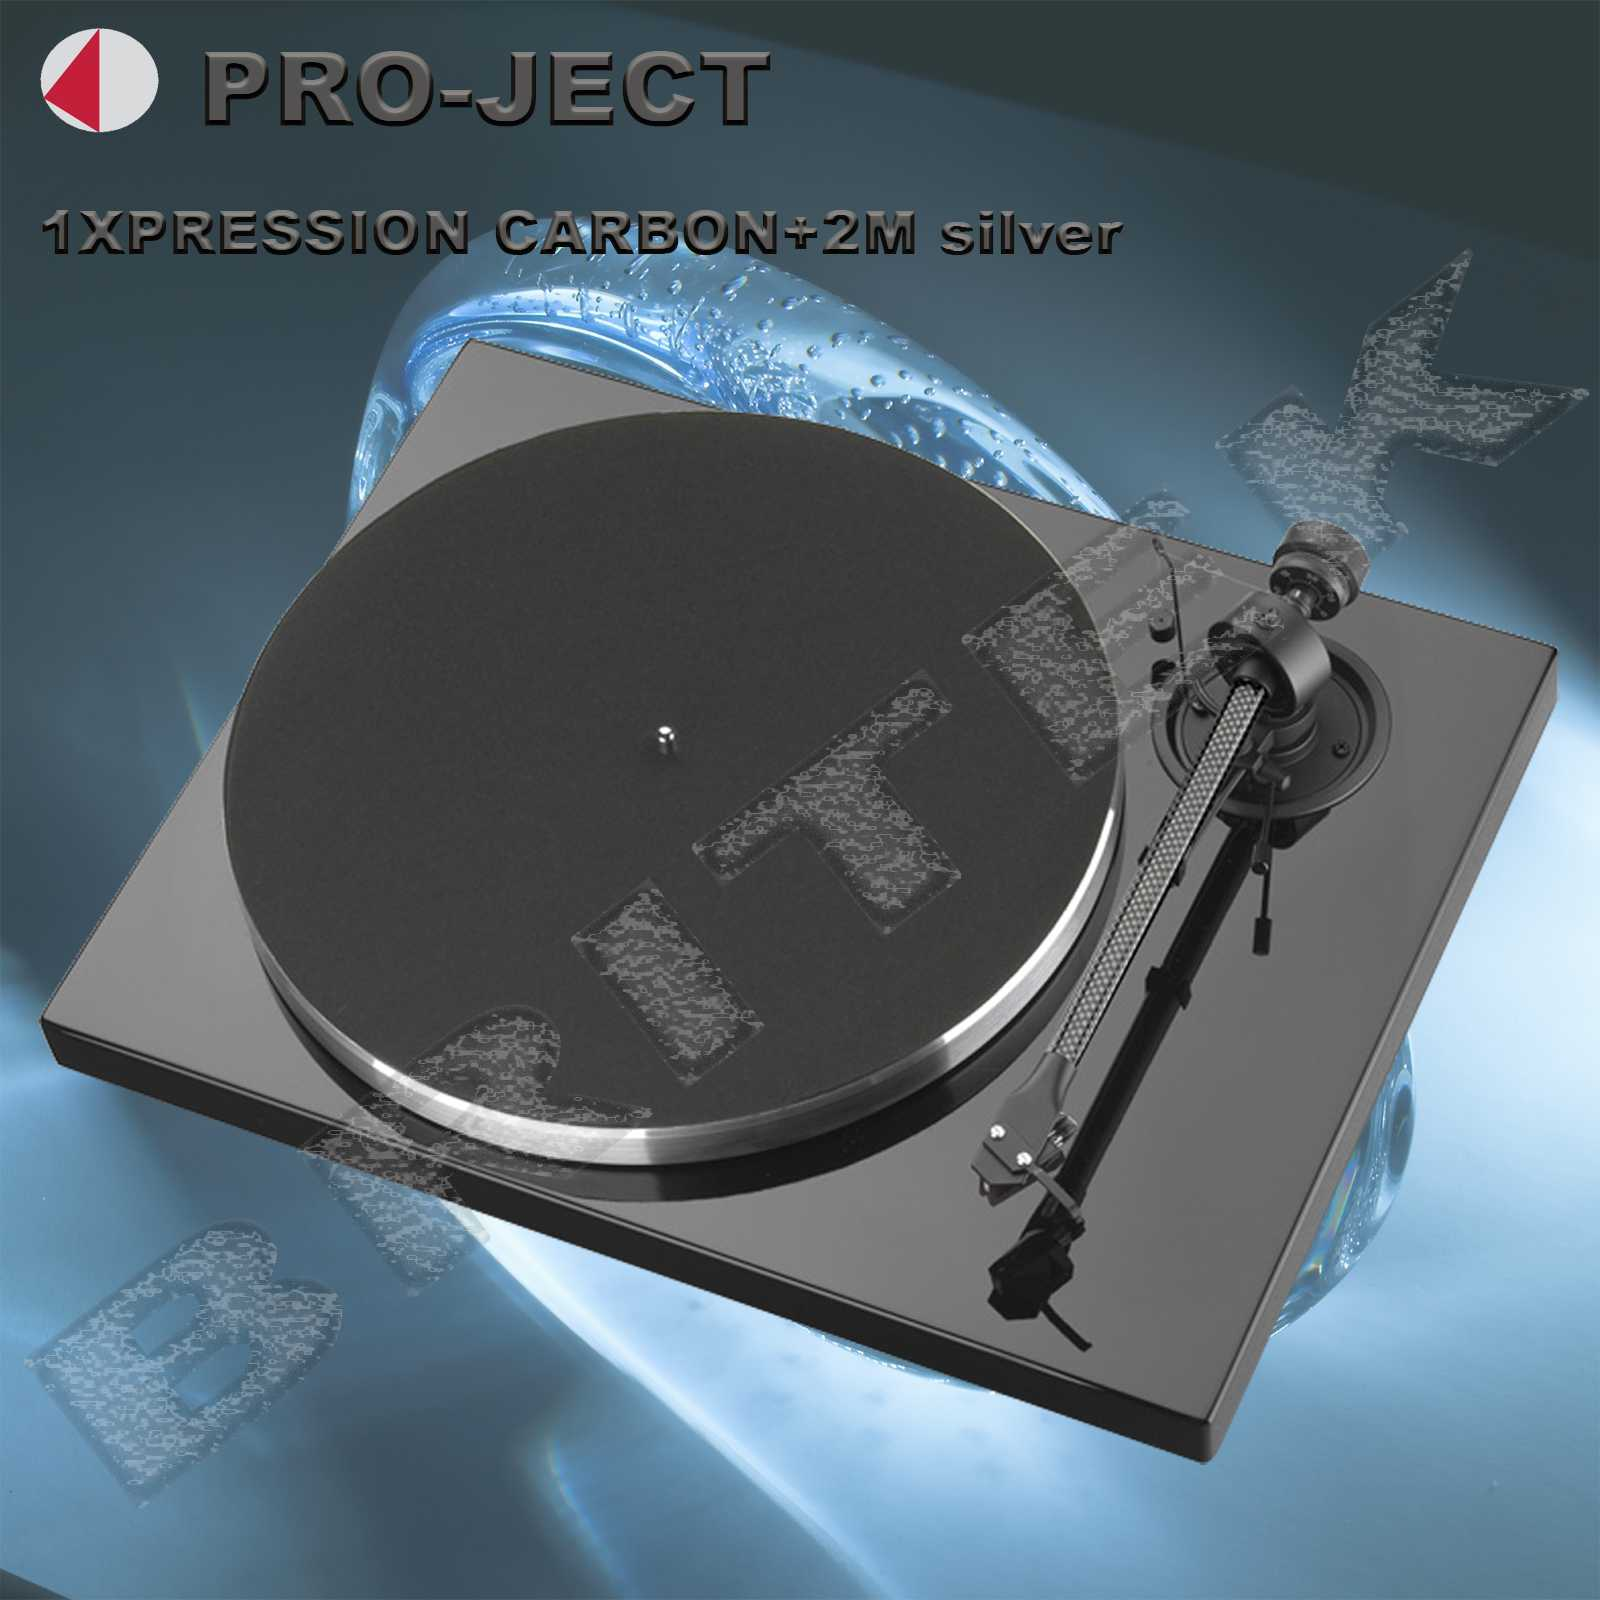 PRO-JECT 1 XPRESSION CARBON CLASSIC+2M silver